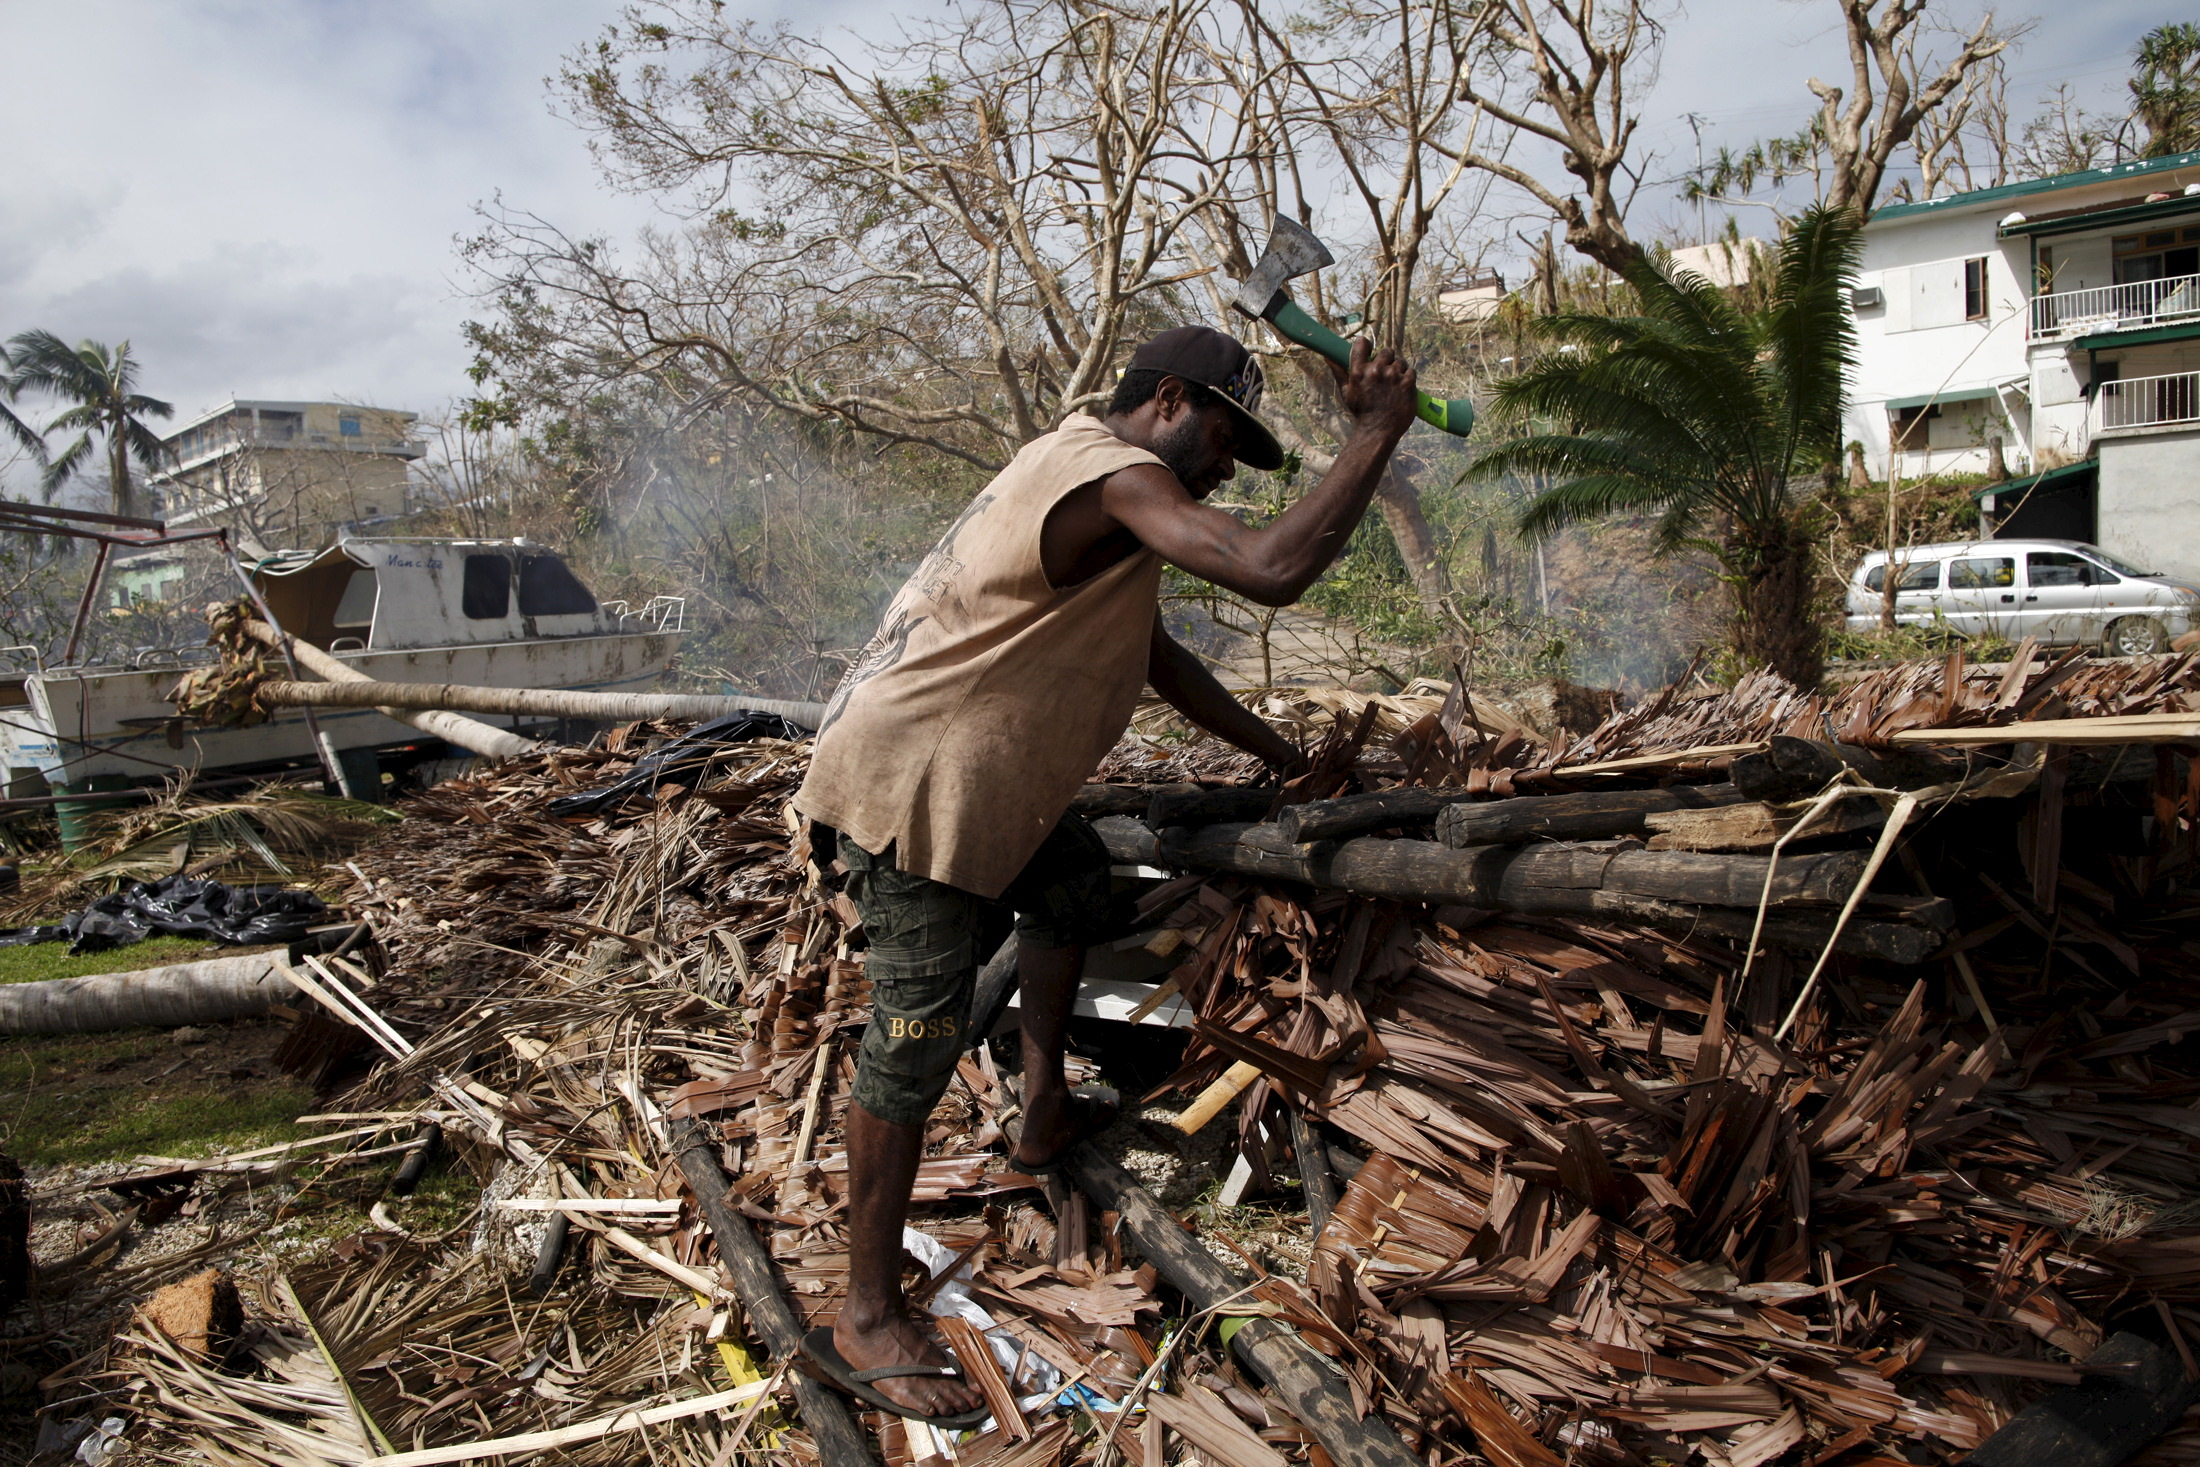 A worker chops up fallen trees next to a destroyed boat at a resident's compound days after Cyclone Pam in Port Vila, capital city of the Pacific island nation of Vanuatu March 19, 2015.